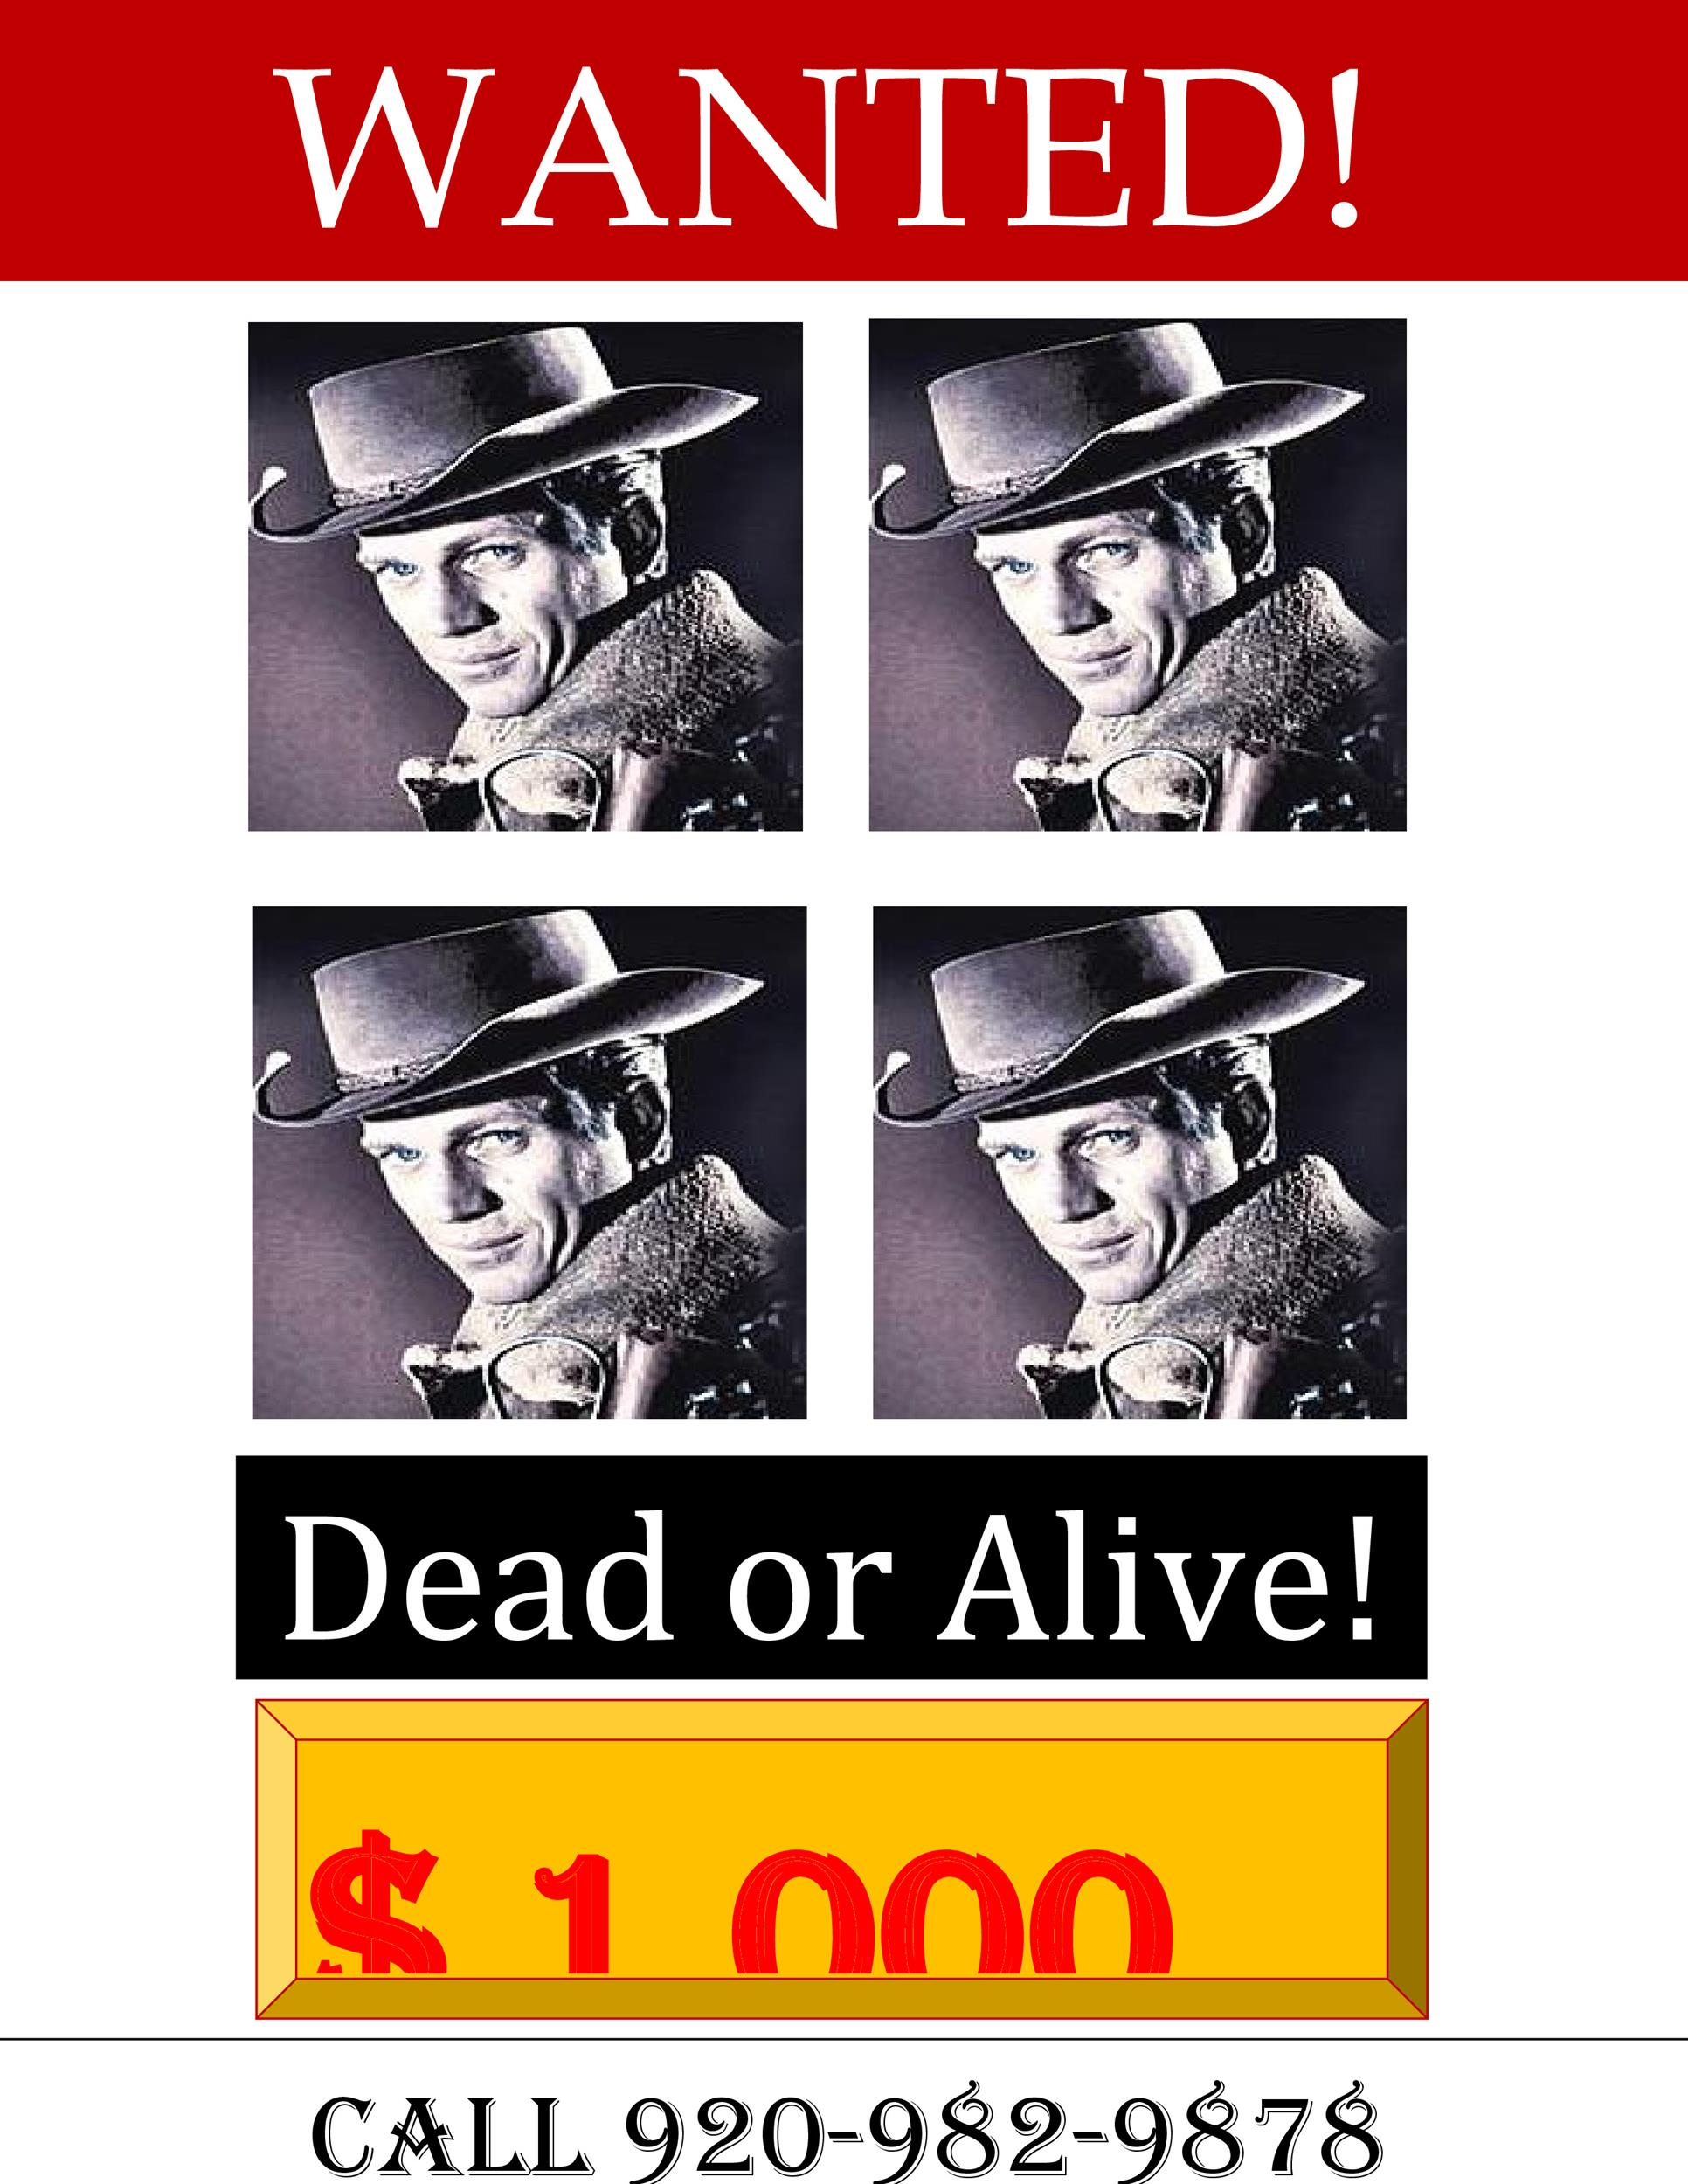 Free Dead or Alive Wanted Poster Template 01